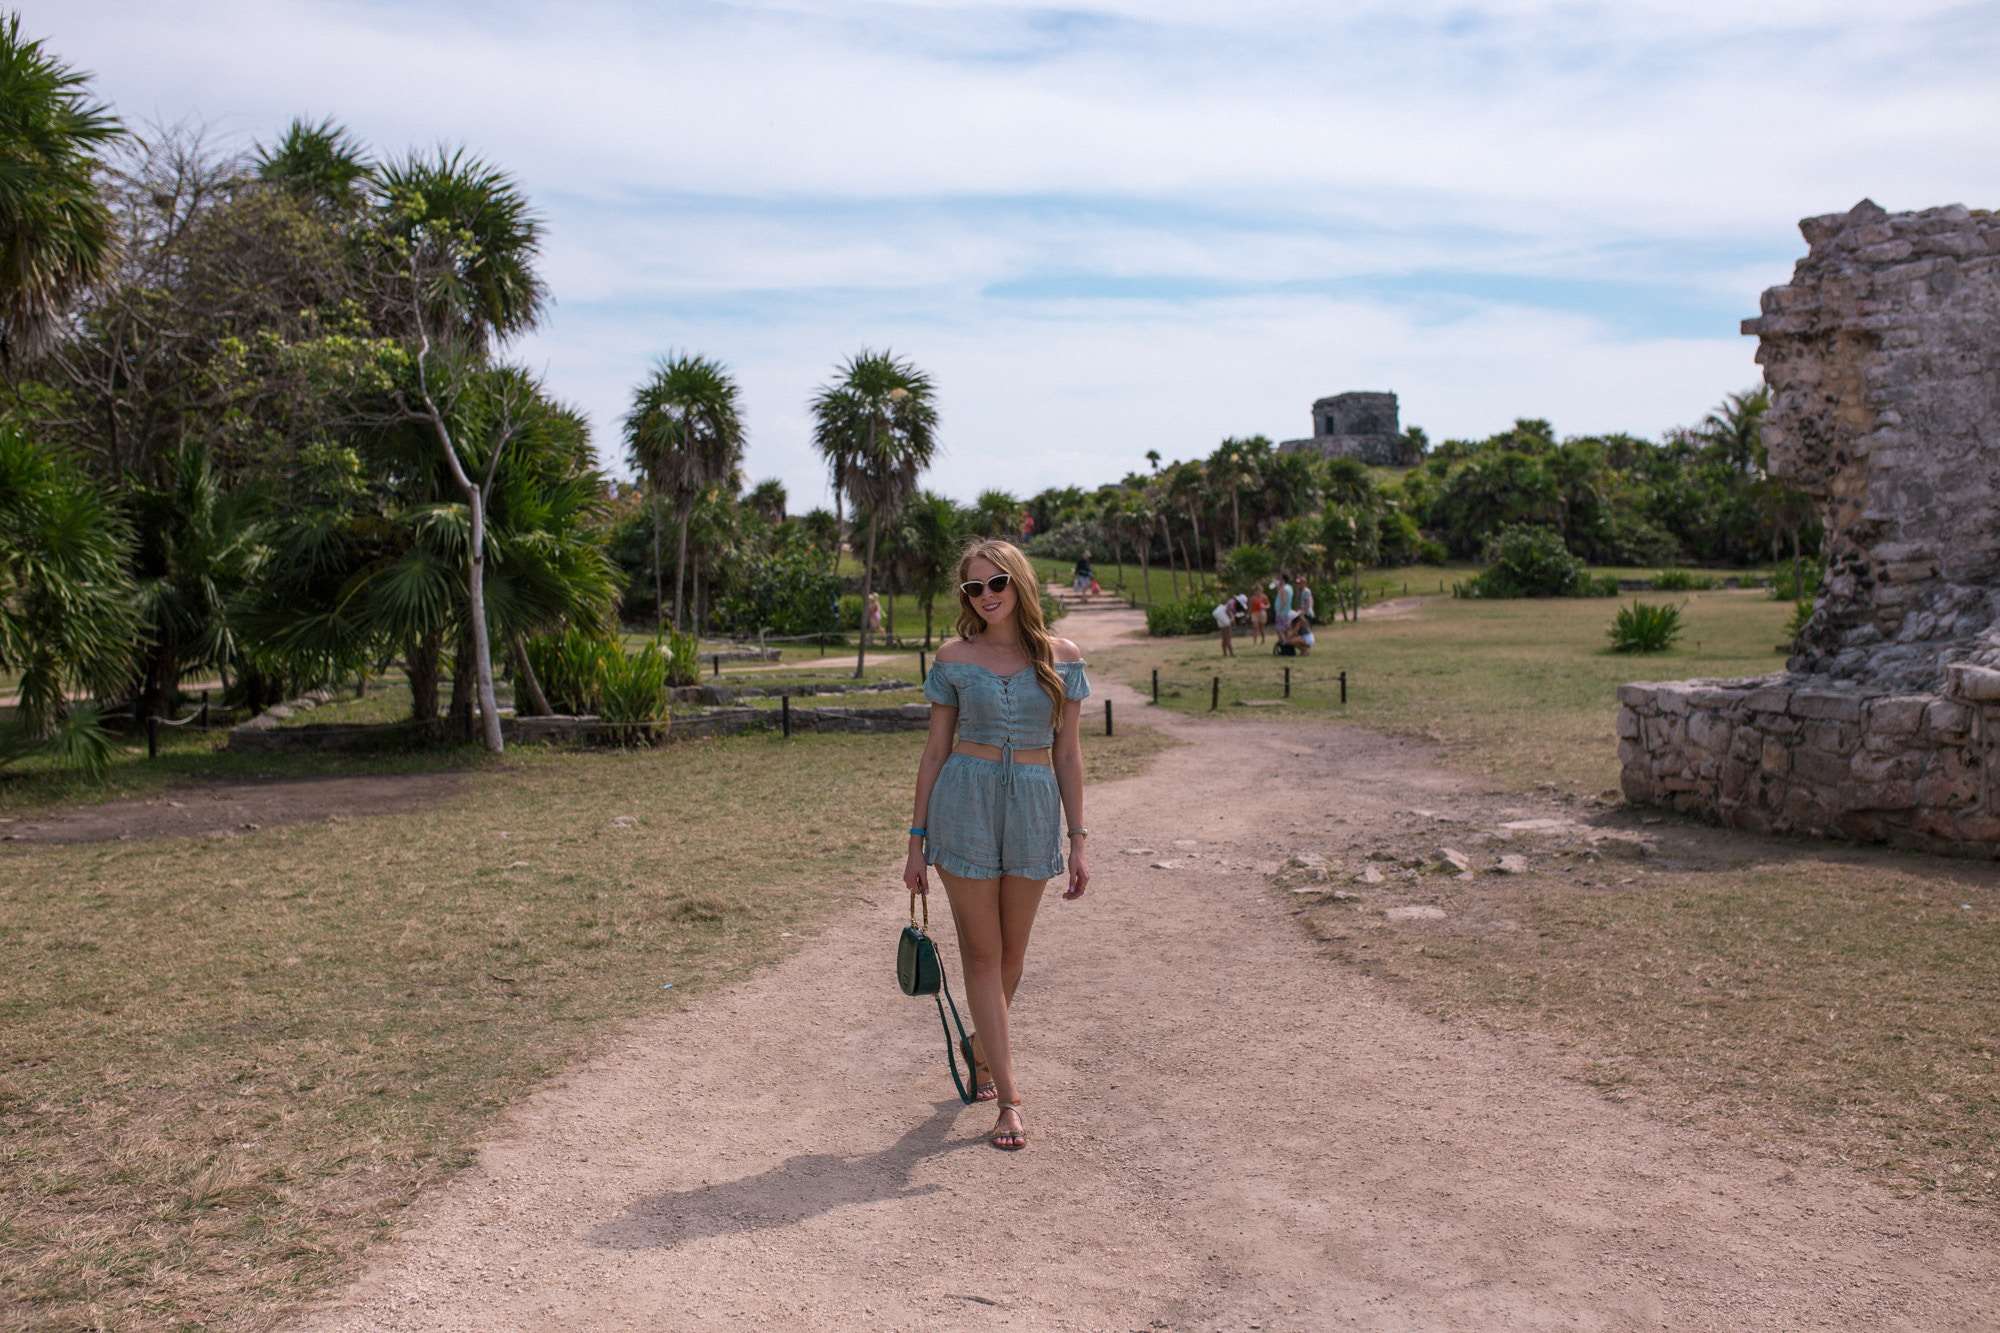 10 Helpful Tips for visiting Tulum - dress light and bring sunscreen, water and a towel. I wore this light two-piece set from Forever 21 and leather sandals to stay cool.